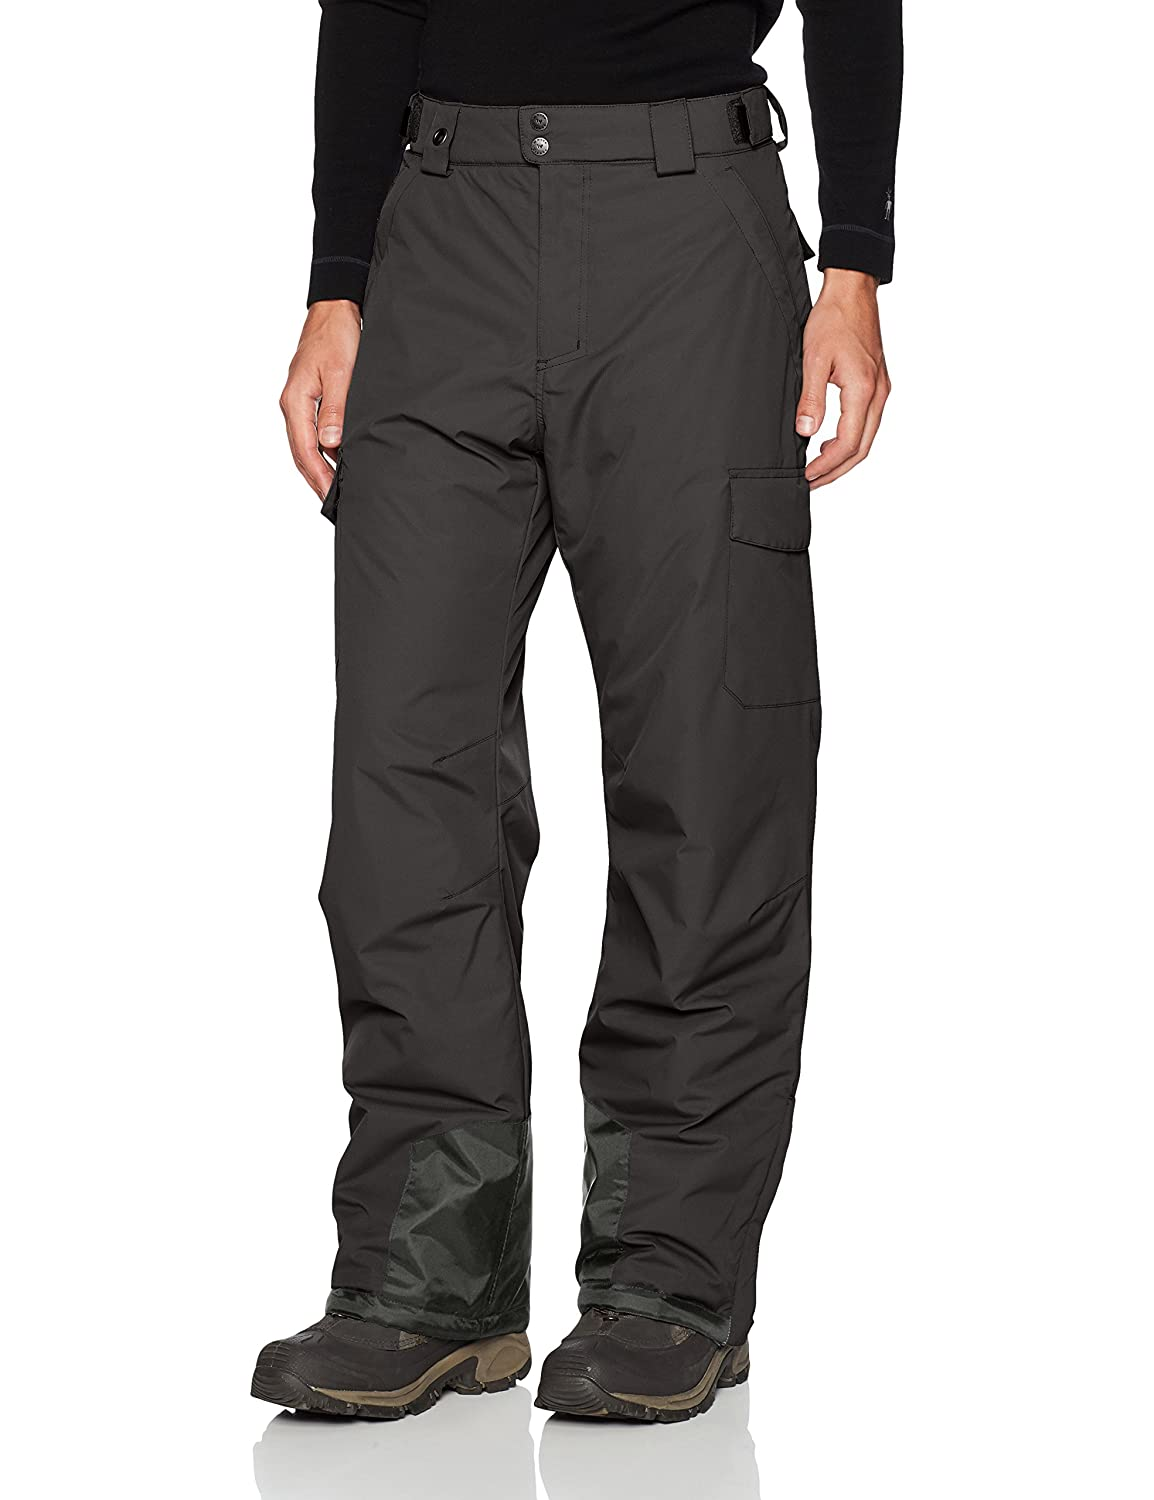 White Sierra Mens 30 Inseam Wind River Insulated Pants